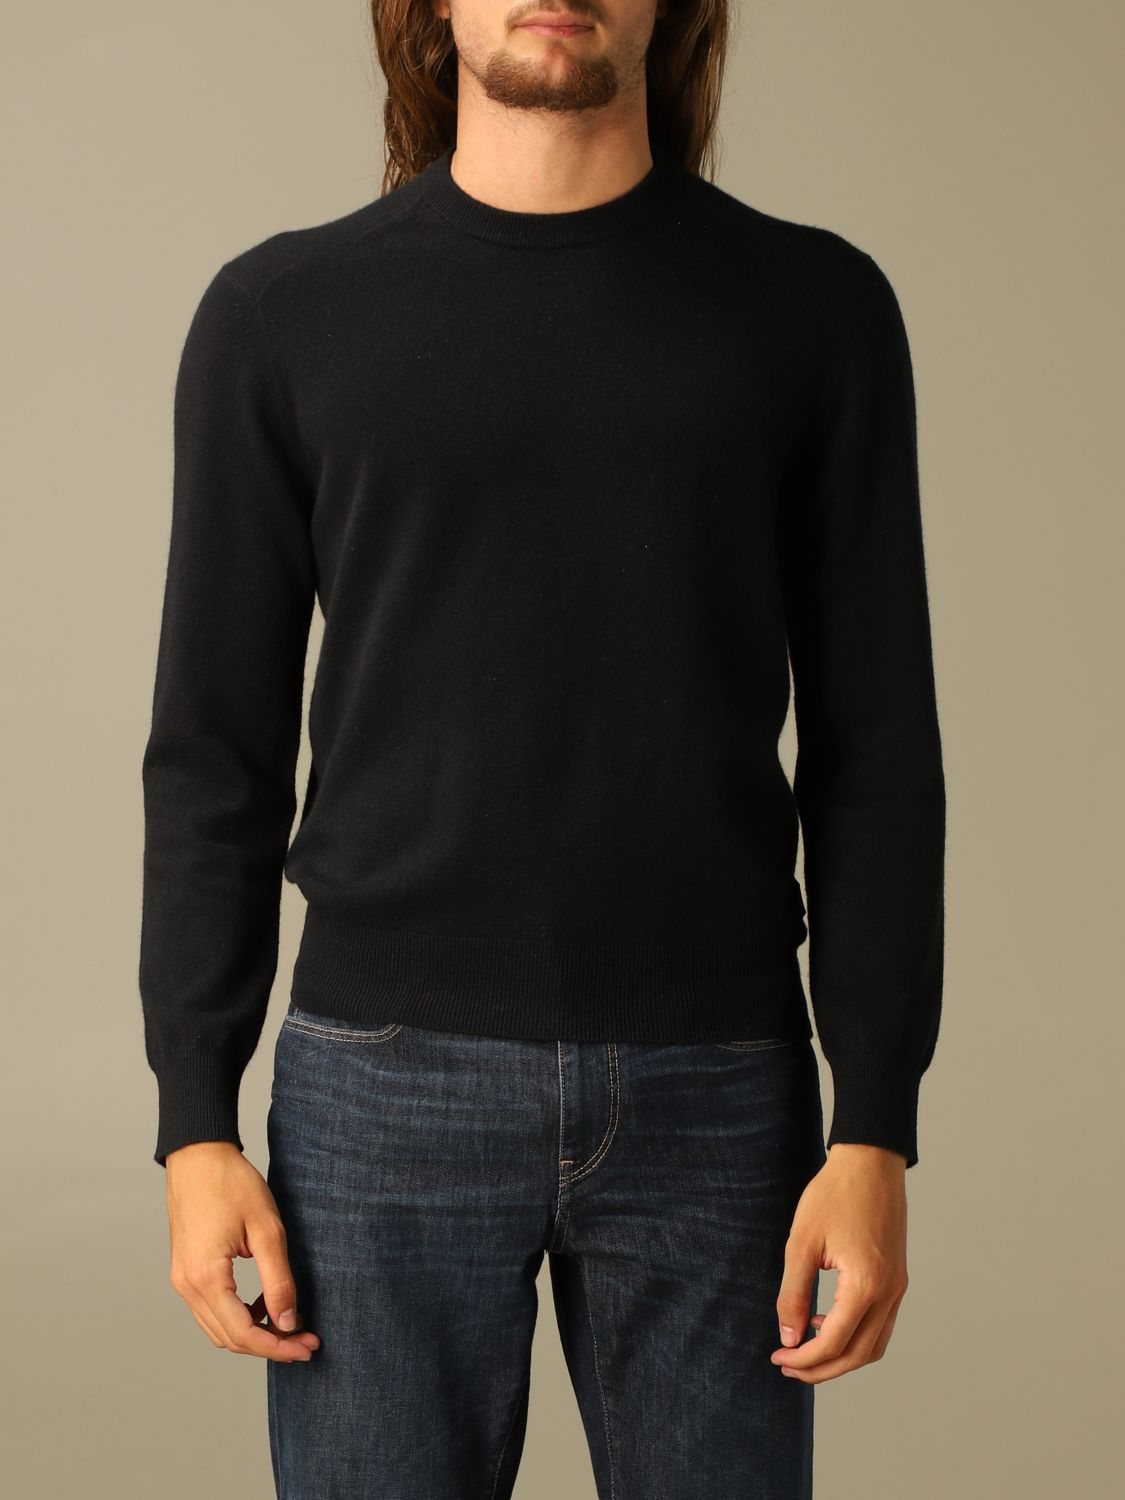 Sweater Z Zegna: Z Zegna cashmere sweater with long sleeves black 1